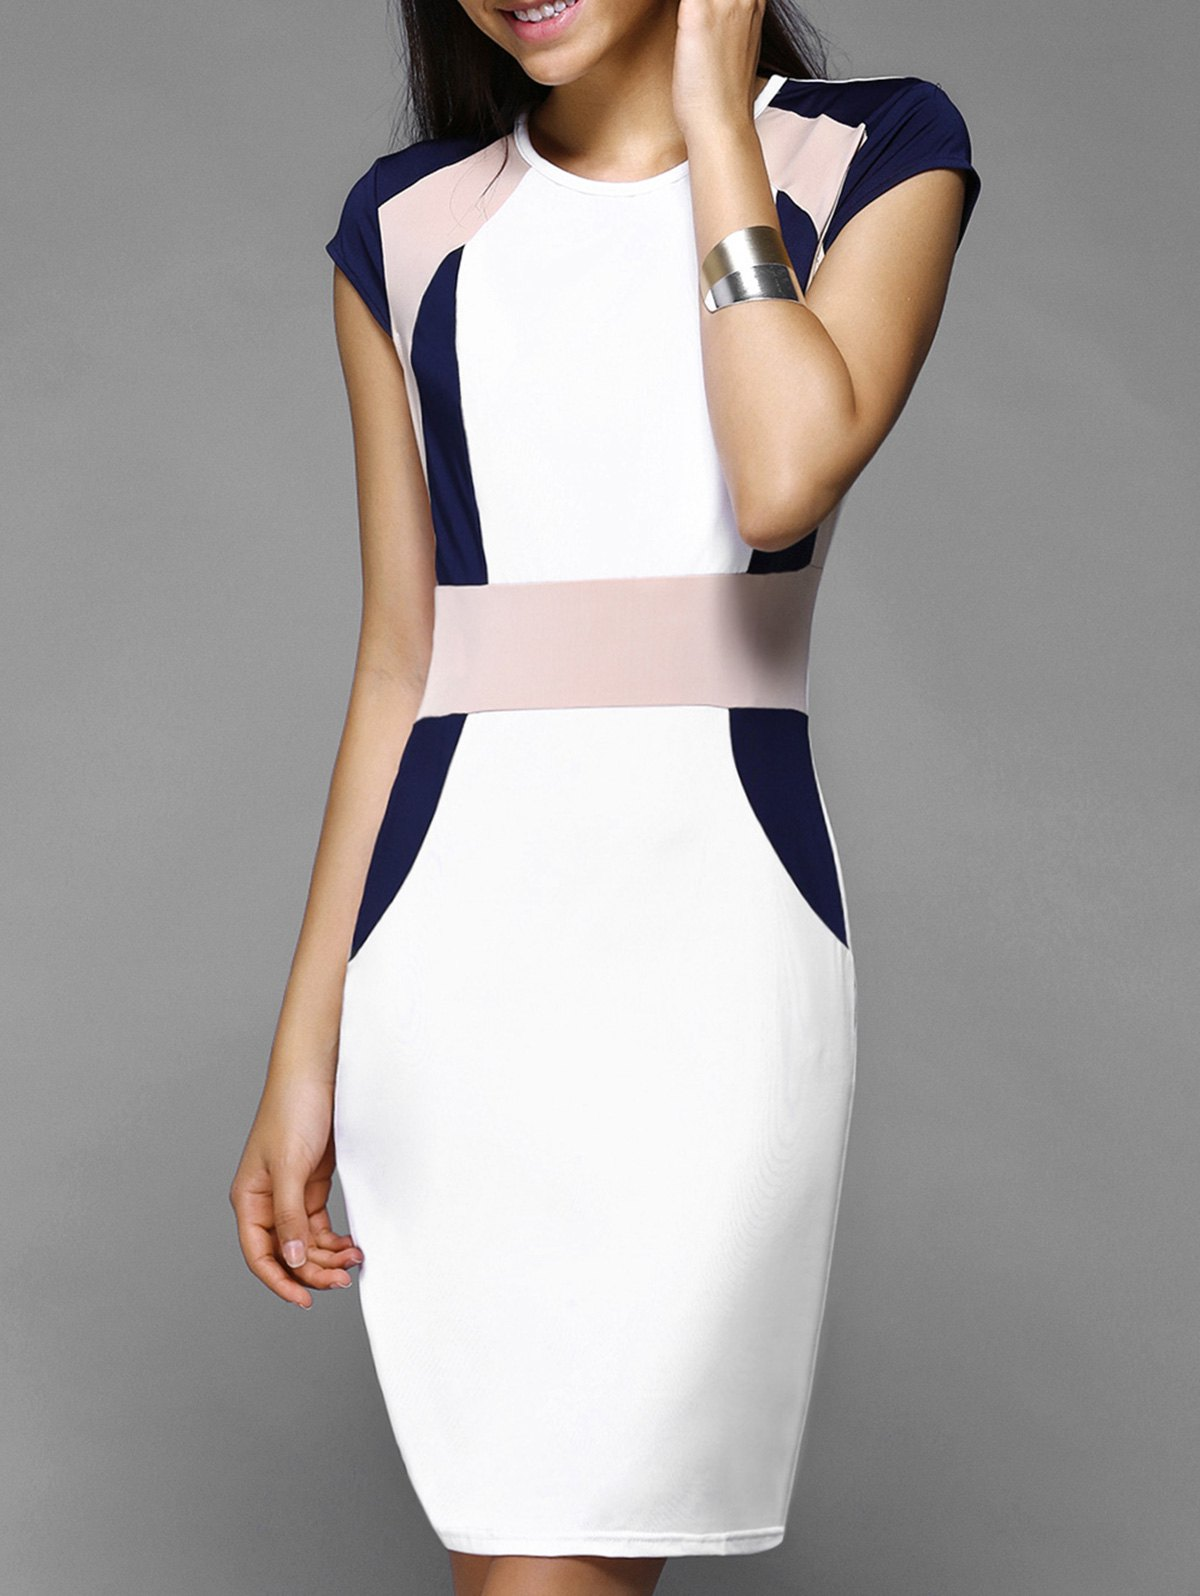 Chic Women's Cap Sleeves Color Spliced Skinny Dress - WHITE XL